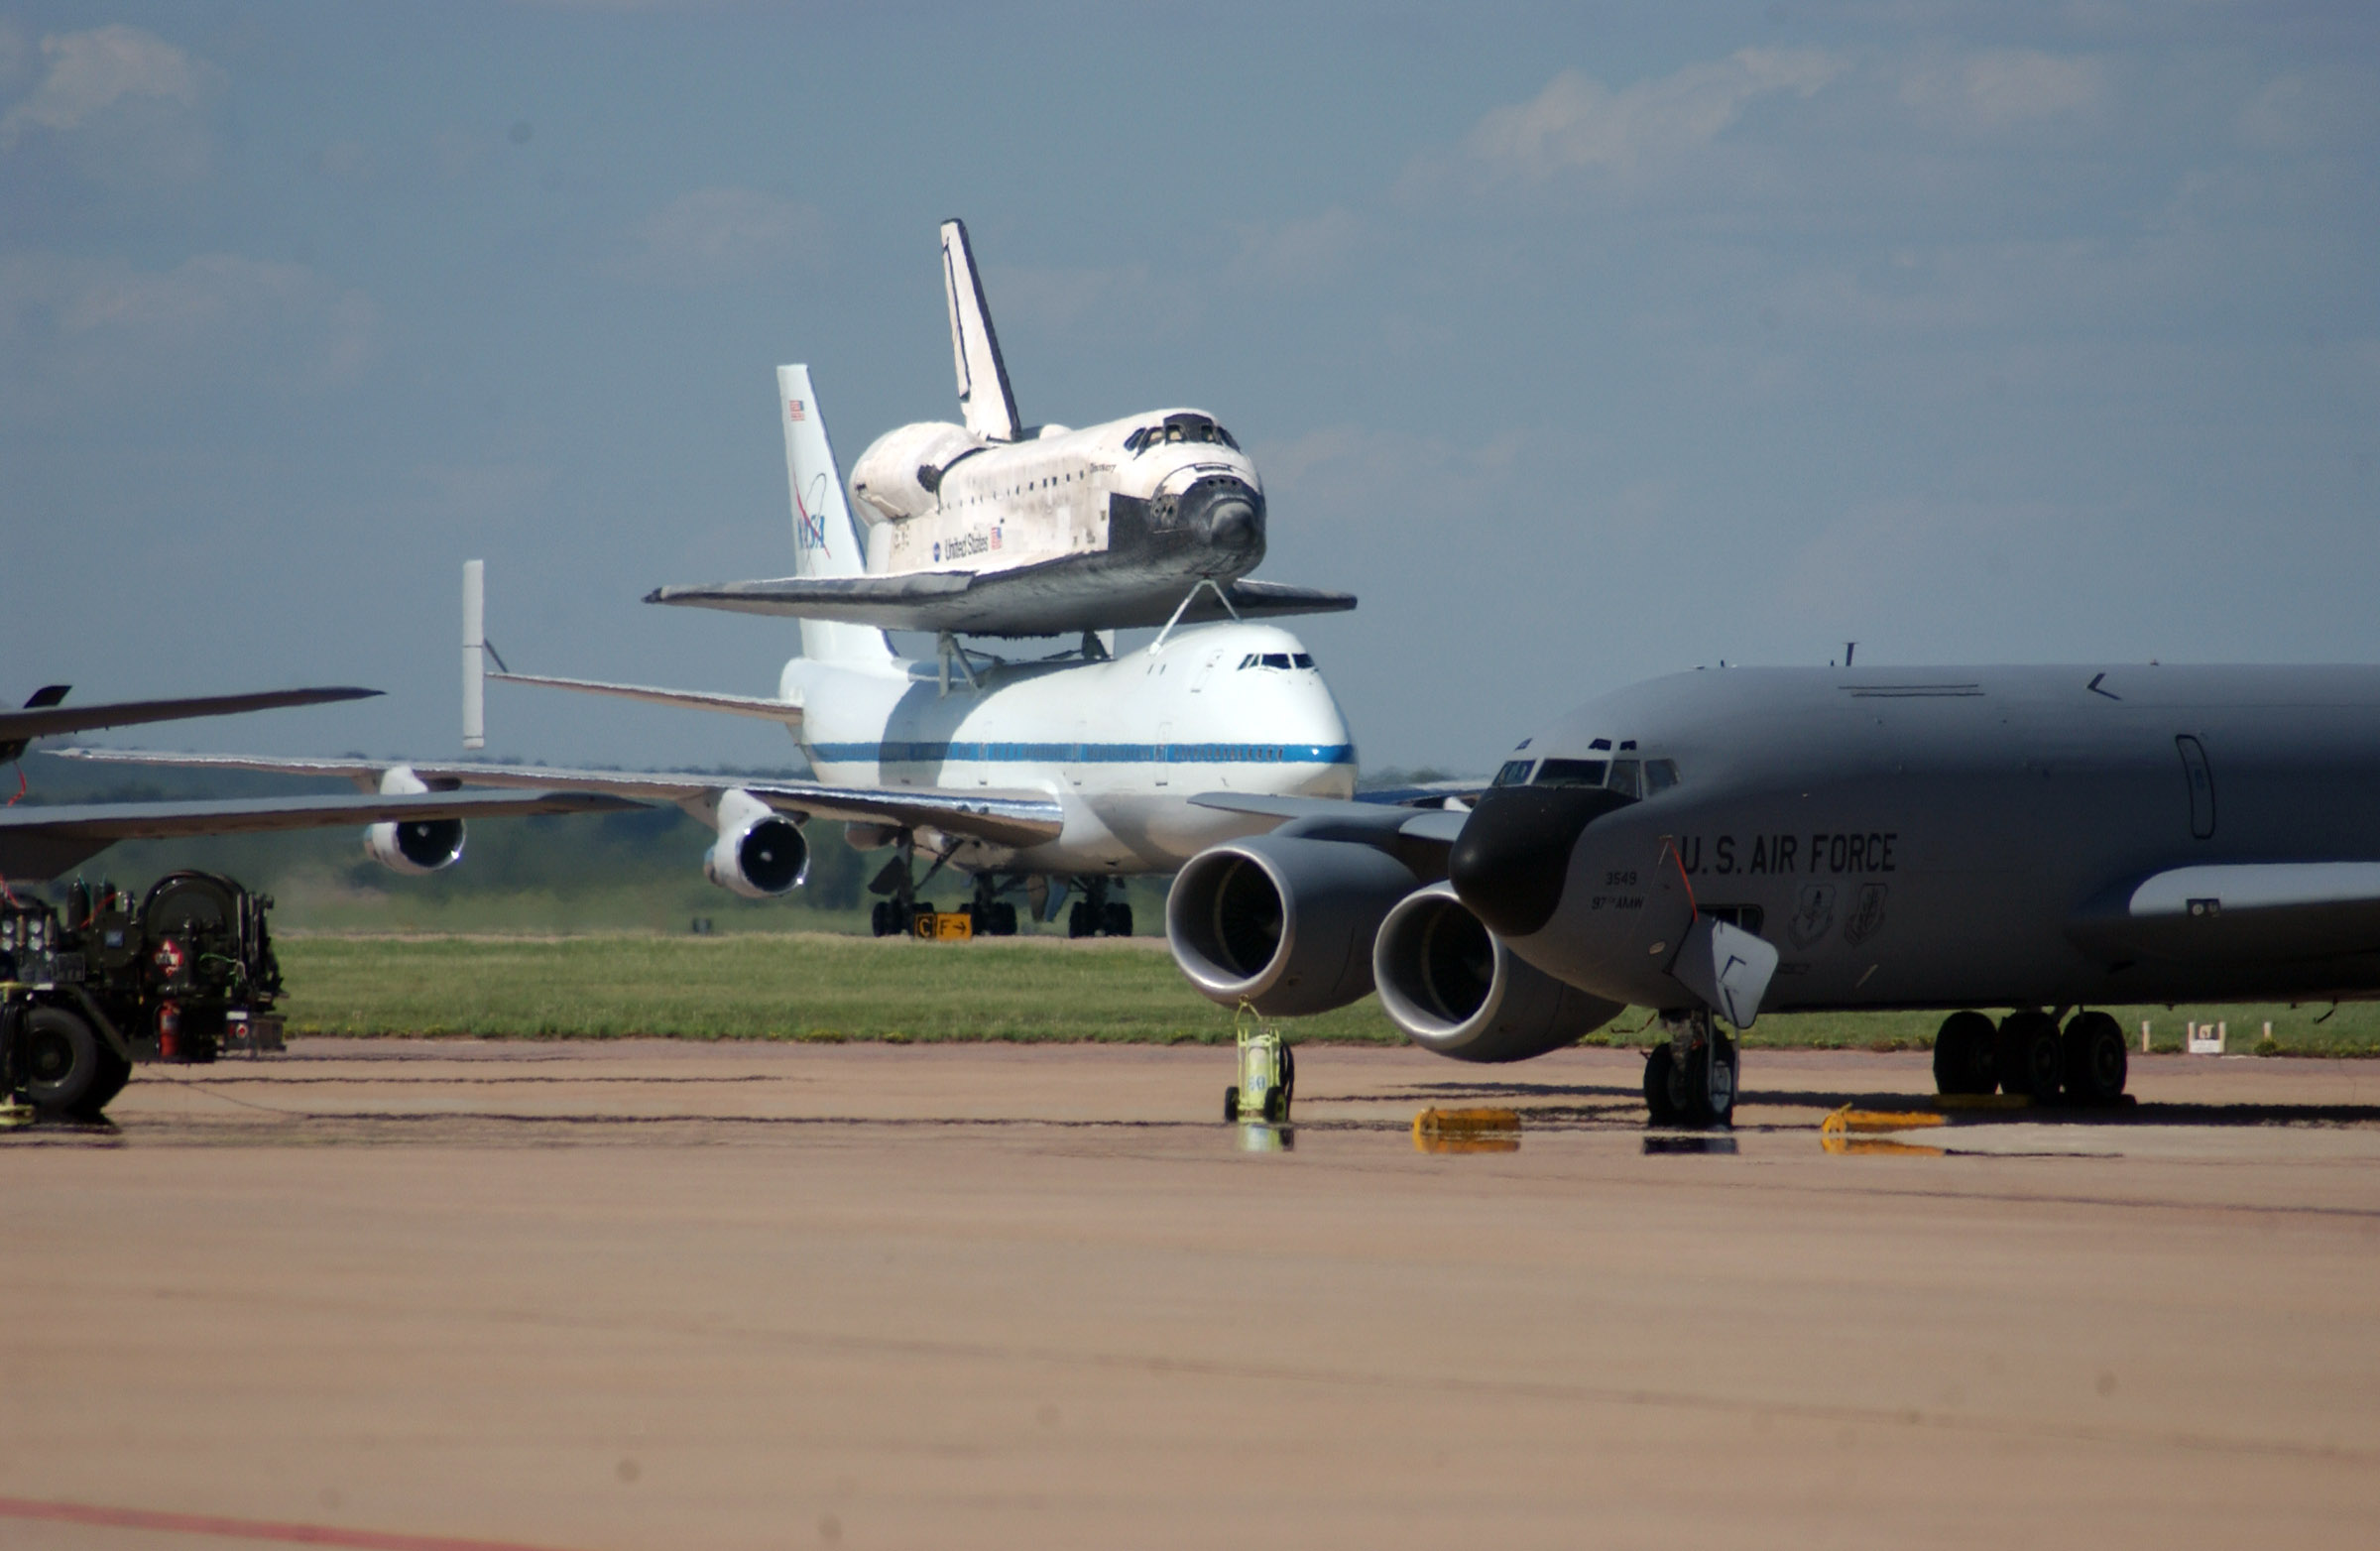 space shuttle usaf - photo #8